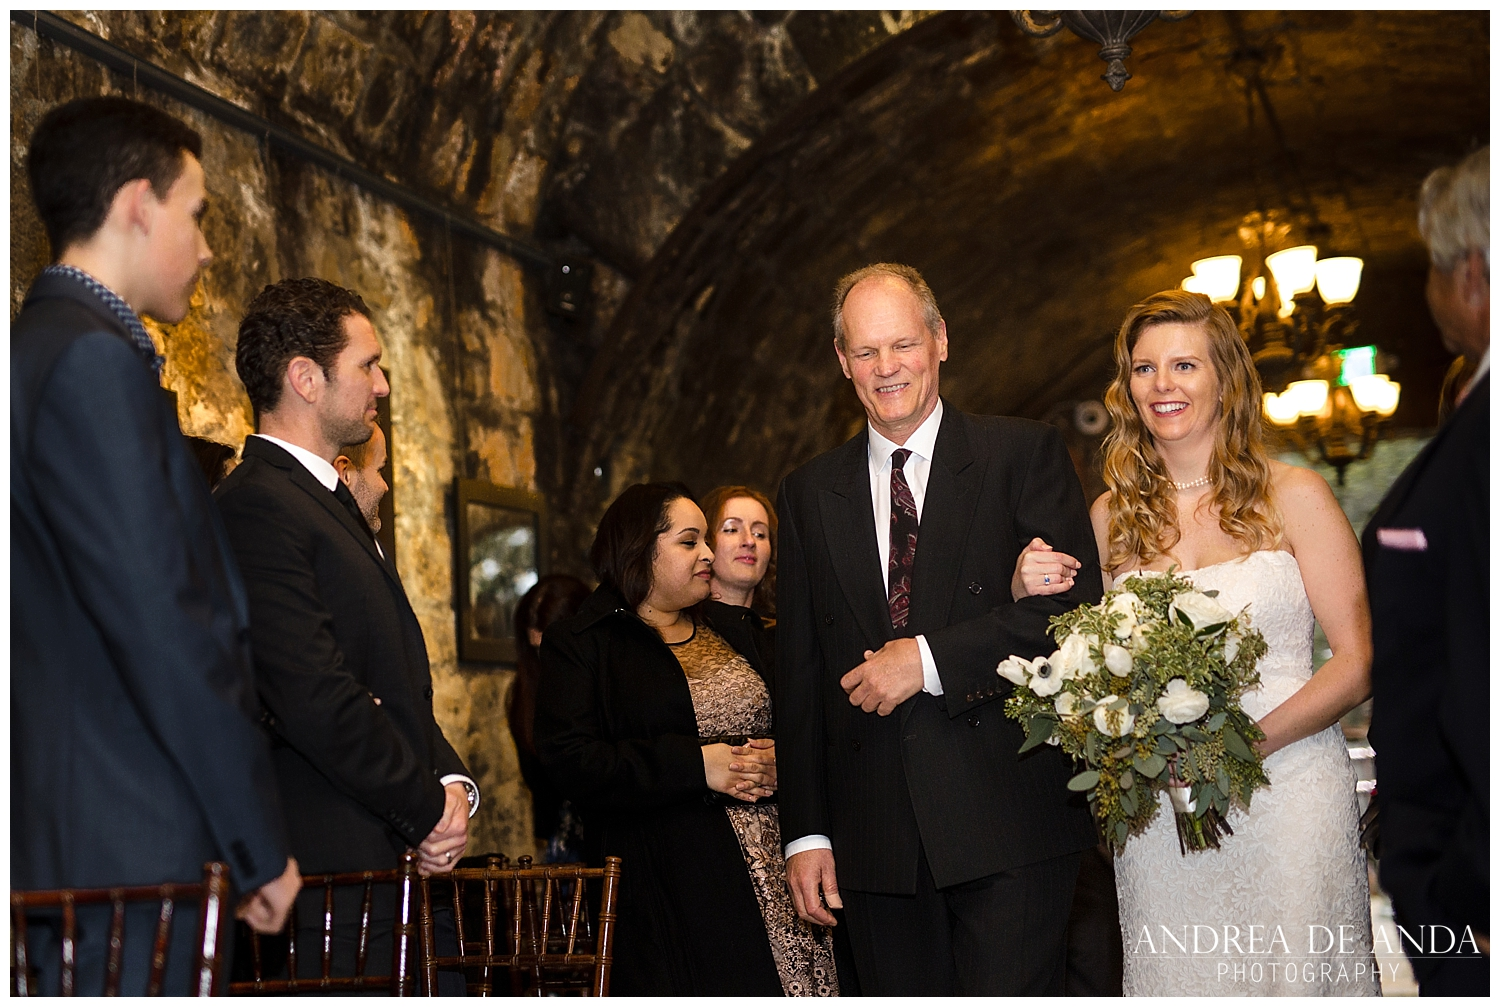 Testarossa Winery Winter Wedding by Andrea de Anda Photography_-20.jpg